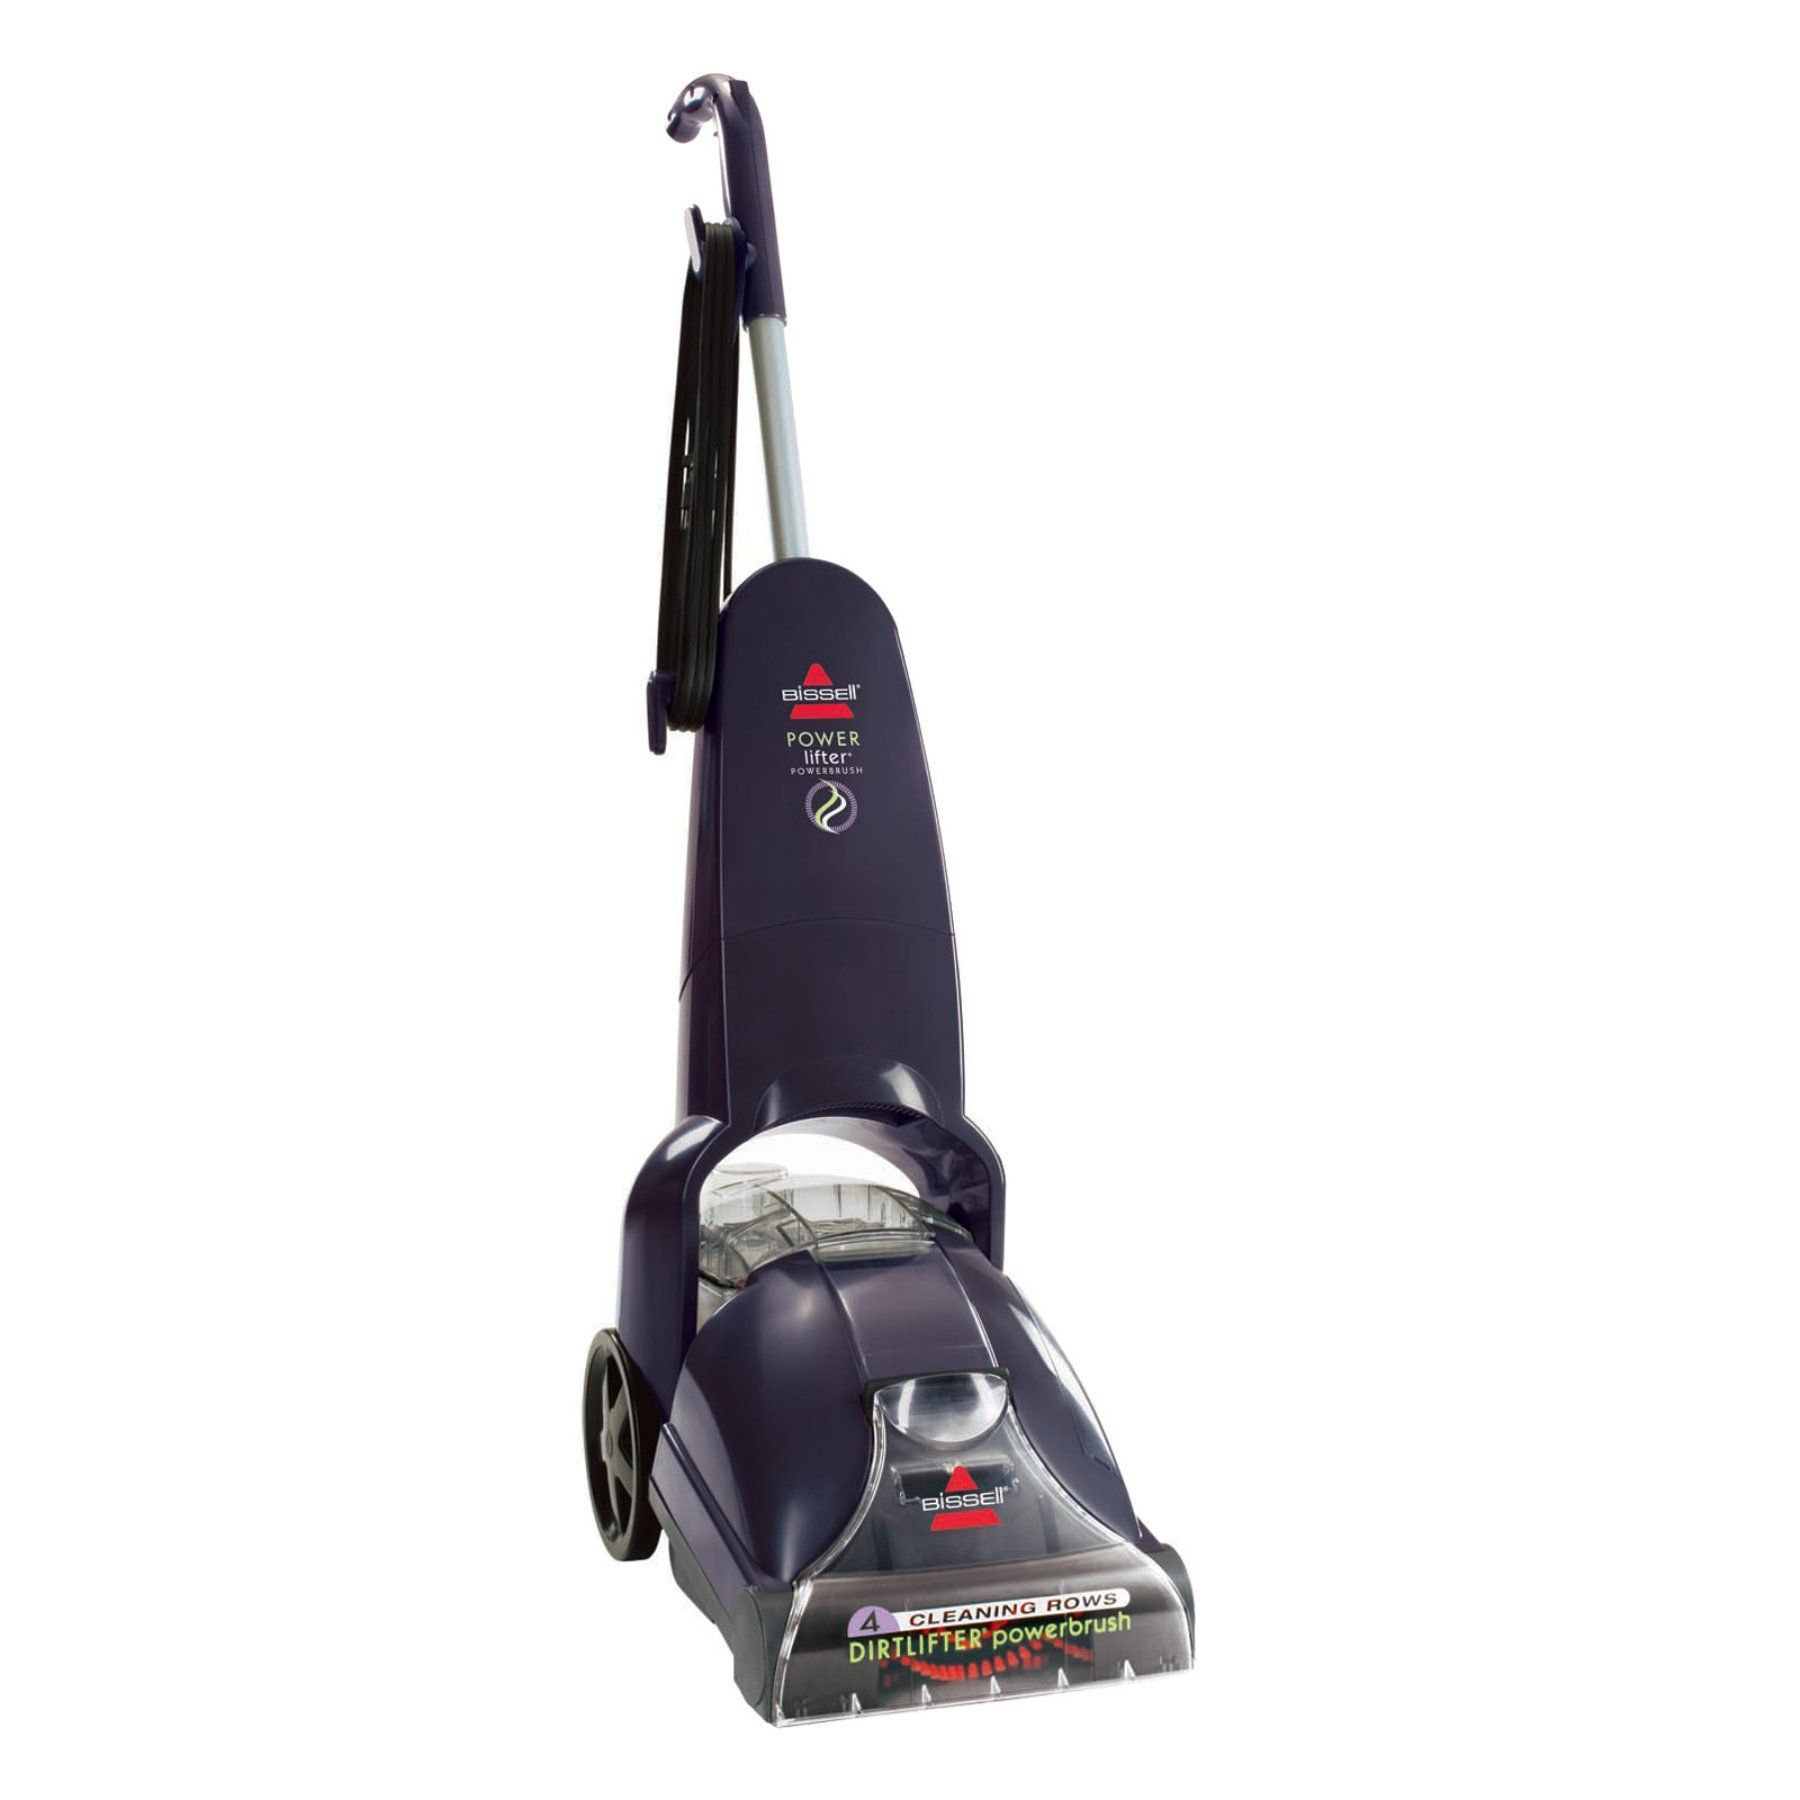 hoover gallery bissell decoration hard of floormate reference and floor canada steam cleaner floors walmart carpet